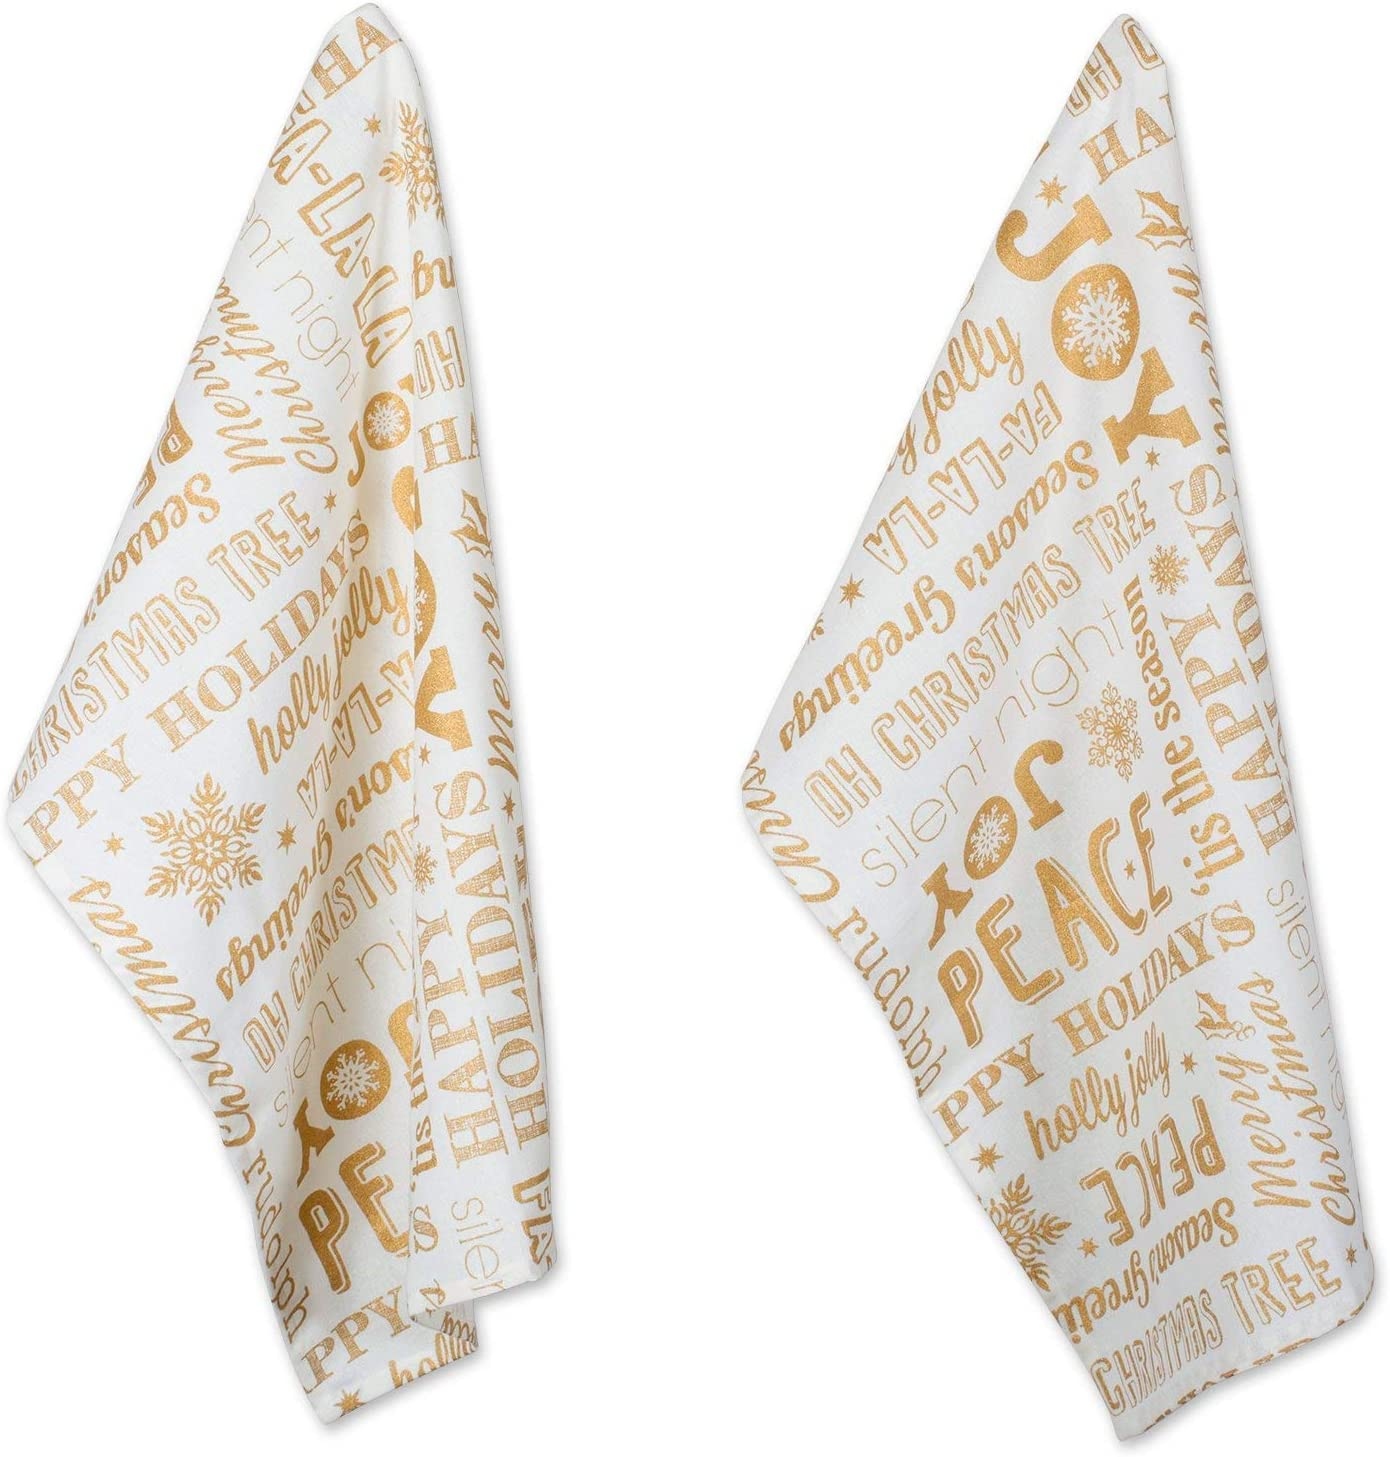 DII Cotton Decorative Christmas Metallic Dish Towel 18 x 28 Set of 2  Oversized Kitchen Dish Towels  Perfect Holiday  Hostee  Housewarming Gift-Christmas Collage Gold